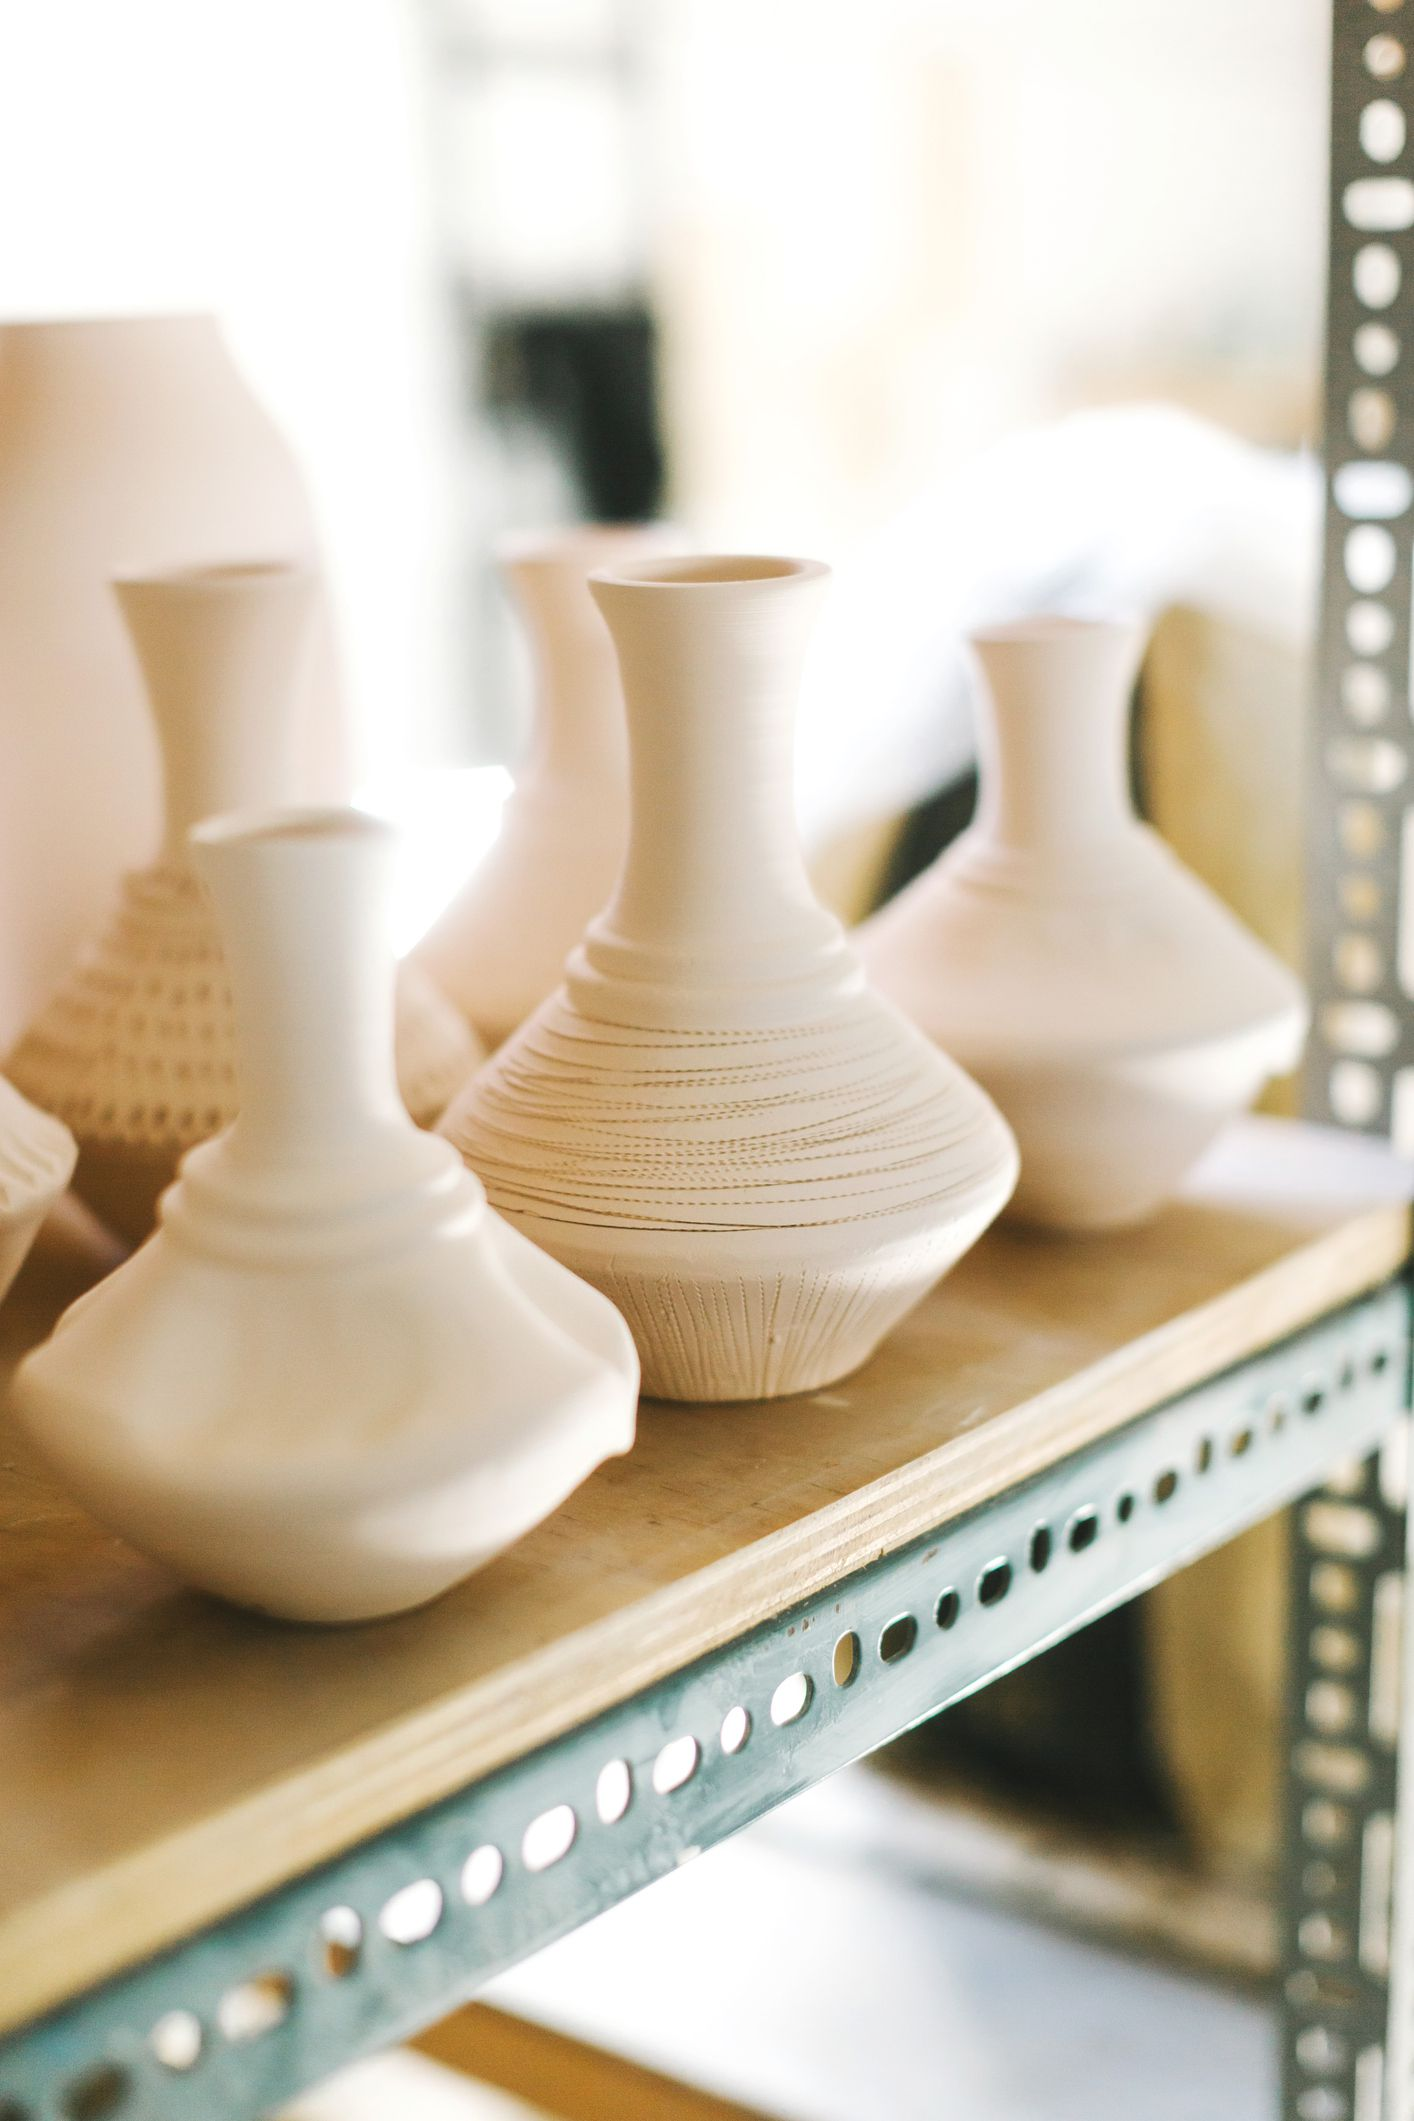 What Is Bone Dry Pottery? - Definition